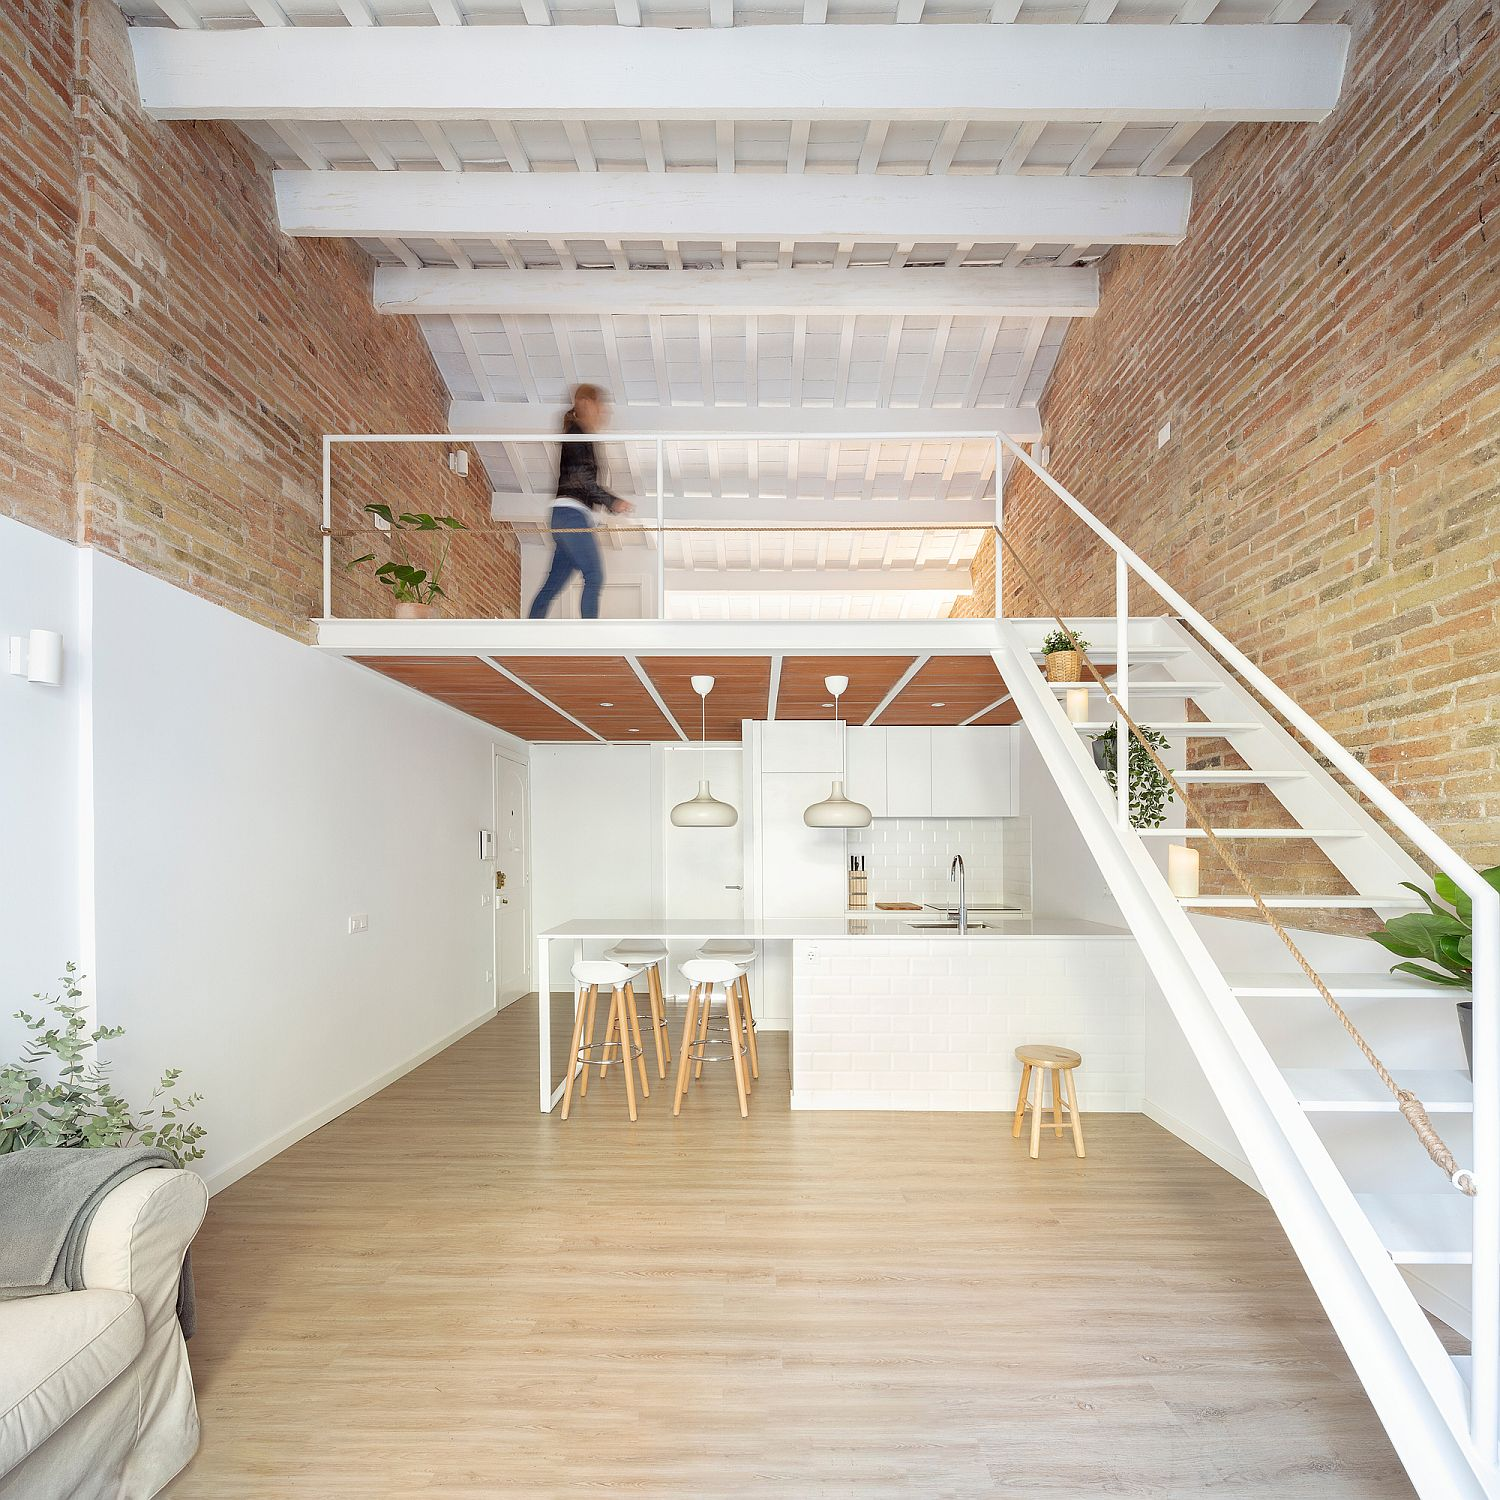 Space-savvy design of the apartment in Barcelona with mezzanine level